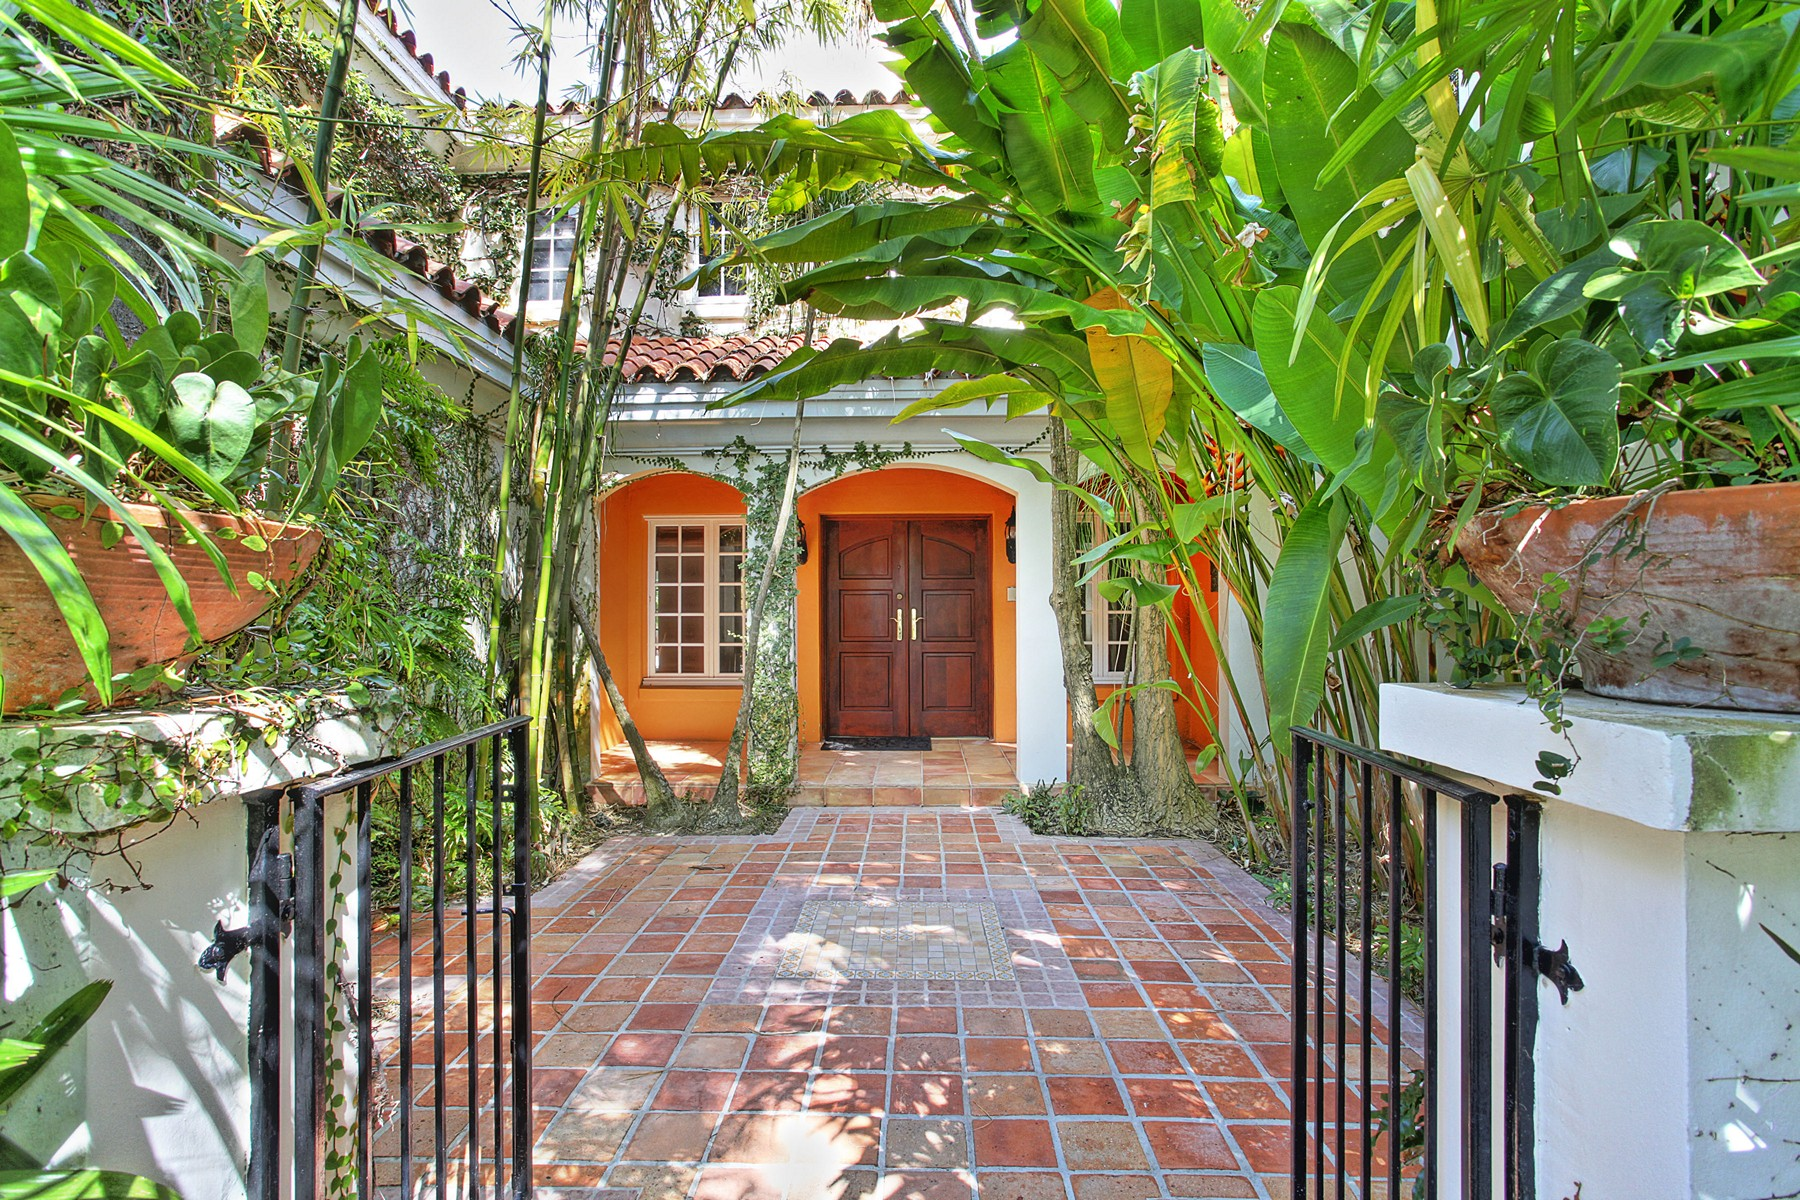 Single Family Home for Sale at 7305 Vistalmar St Coral Gables, Florida 33143 United States